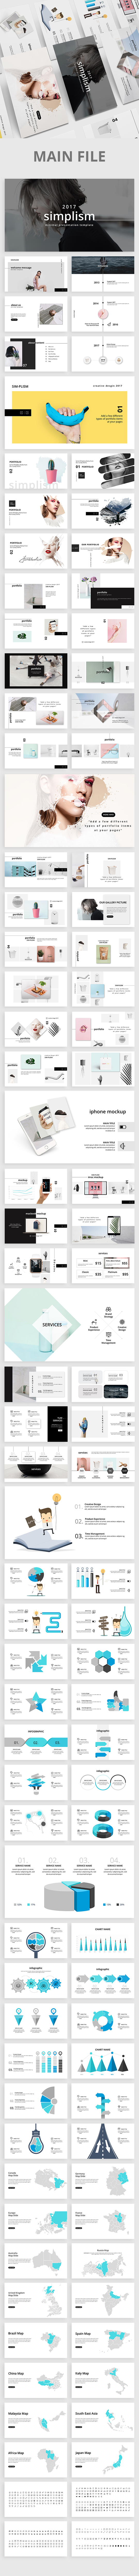 Simplism Minimal Google Slide Template - Google Slides Presentation Templates